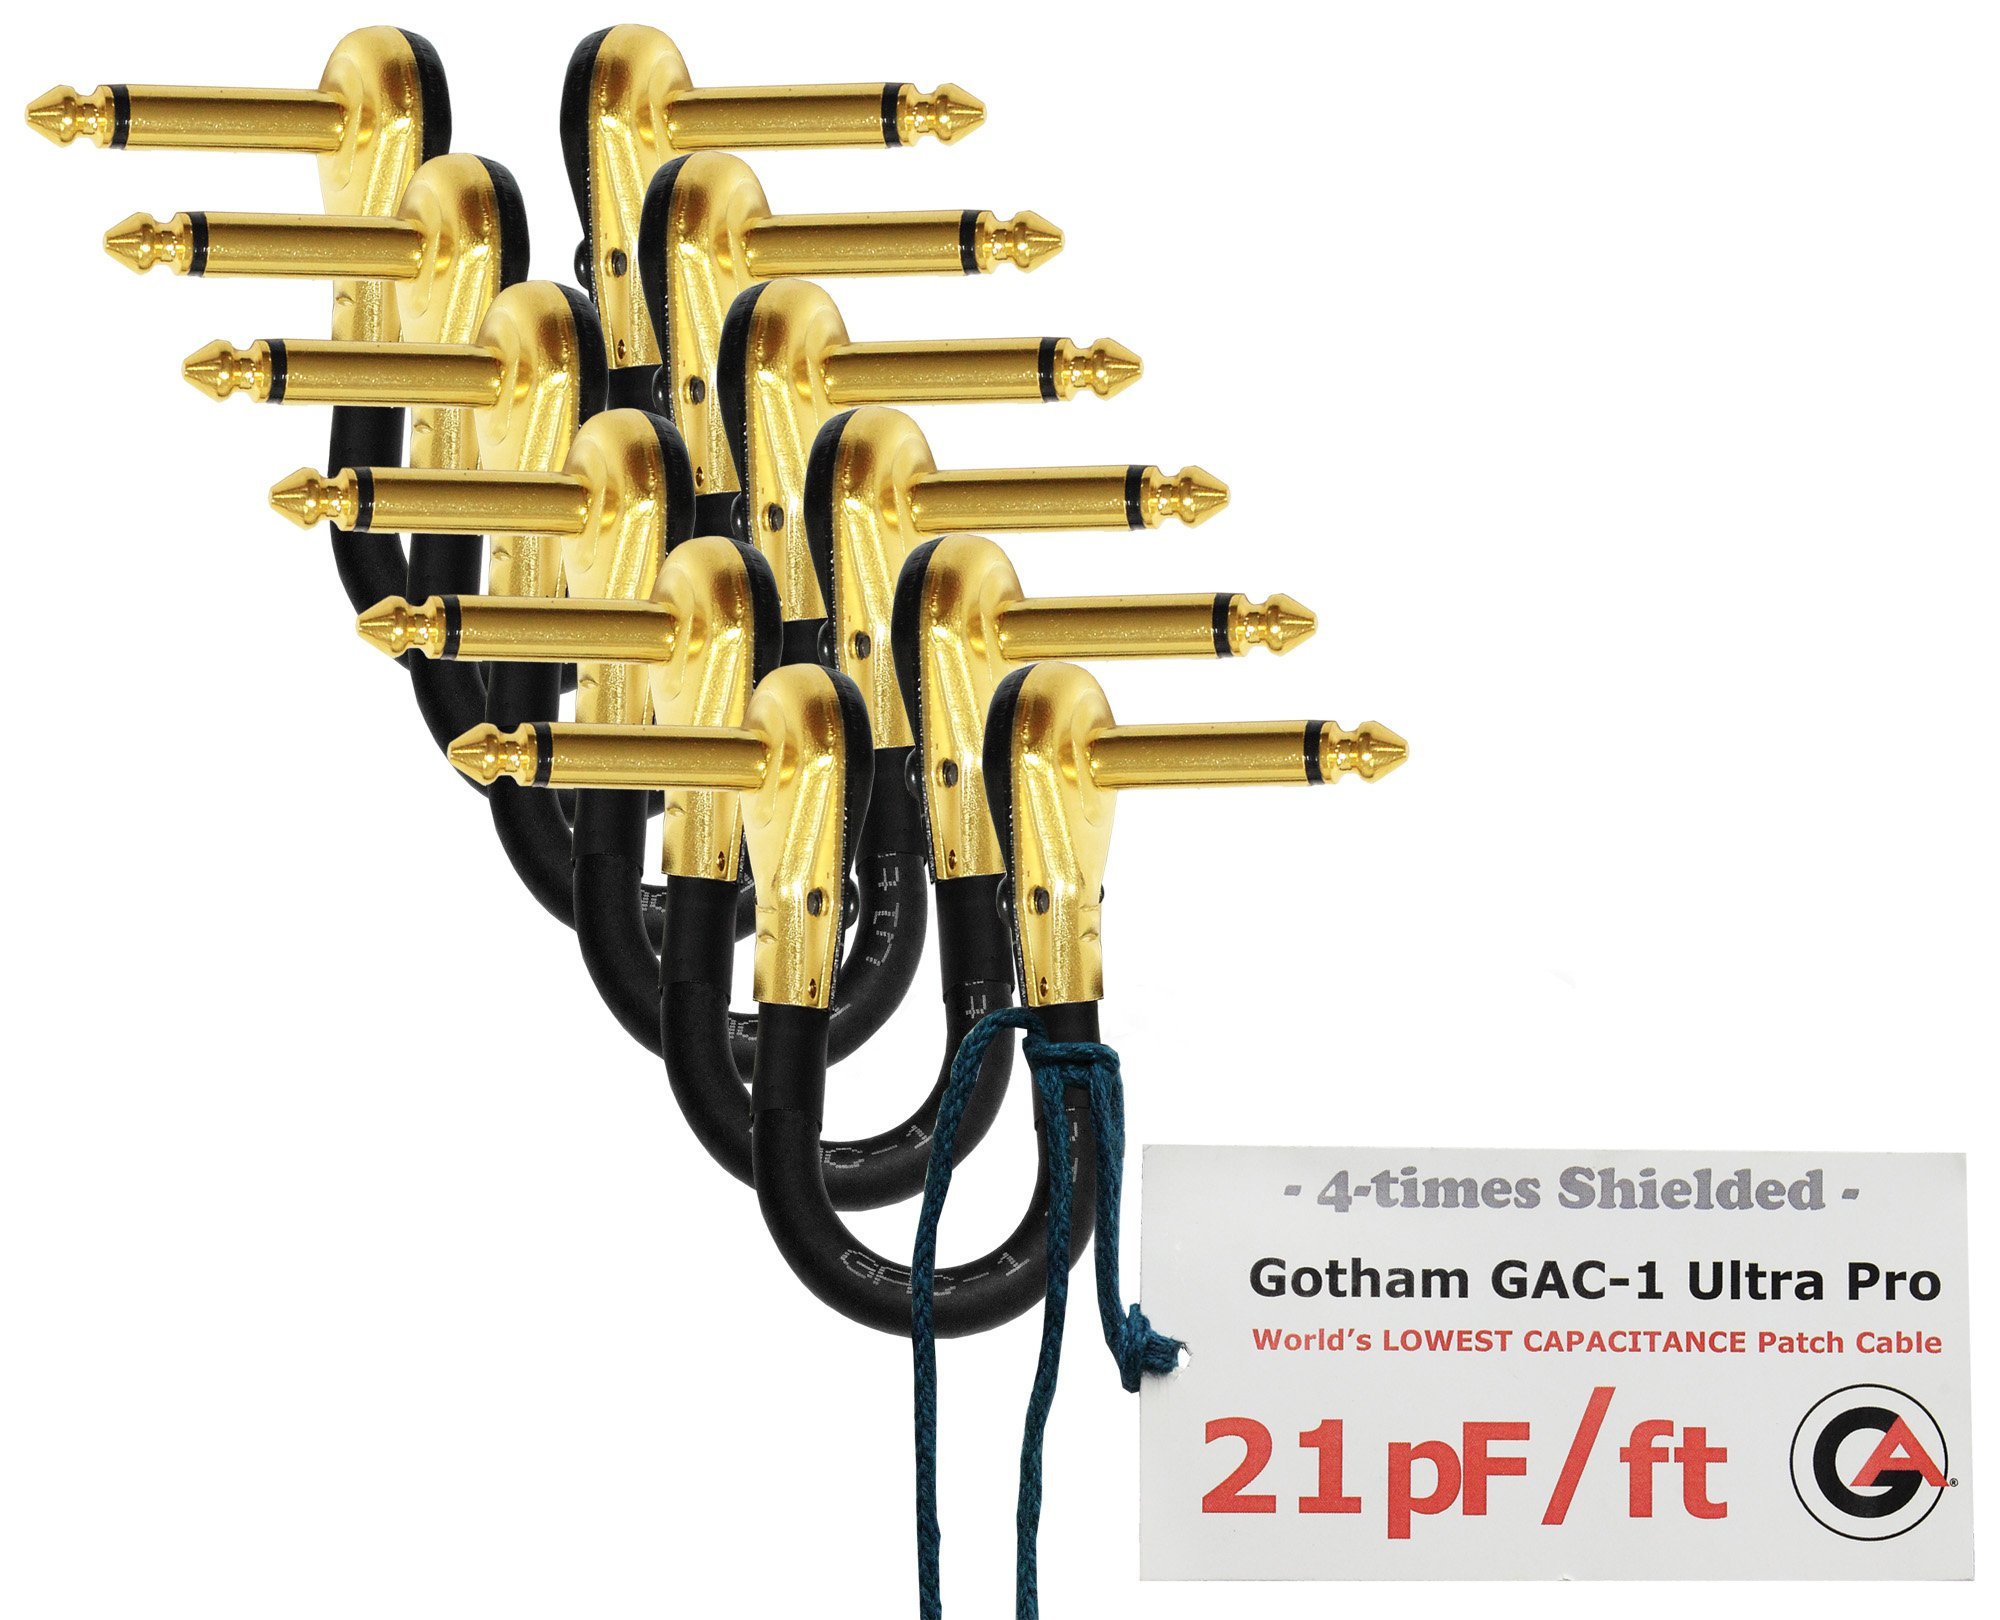 6 Units - 5 Inch - Gotham GAC-1 Ultra Pro - Low-Cap (21pF/ft) Guitar Bass Effects Instrument, Patch Cable & Gold (6.35mm) Low-Profile R/A Pancake type Connectors - CUSTOM MADE By WORLDS BEST CABLES